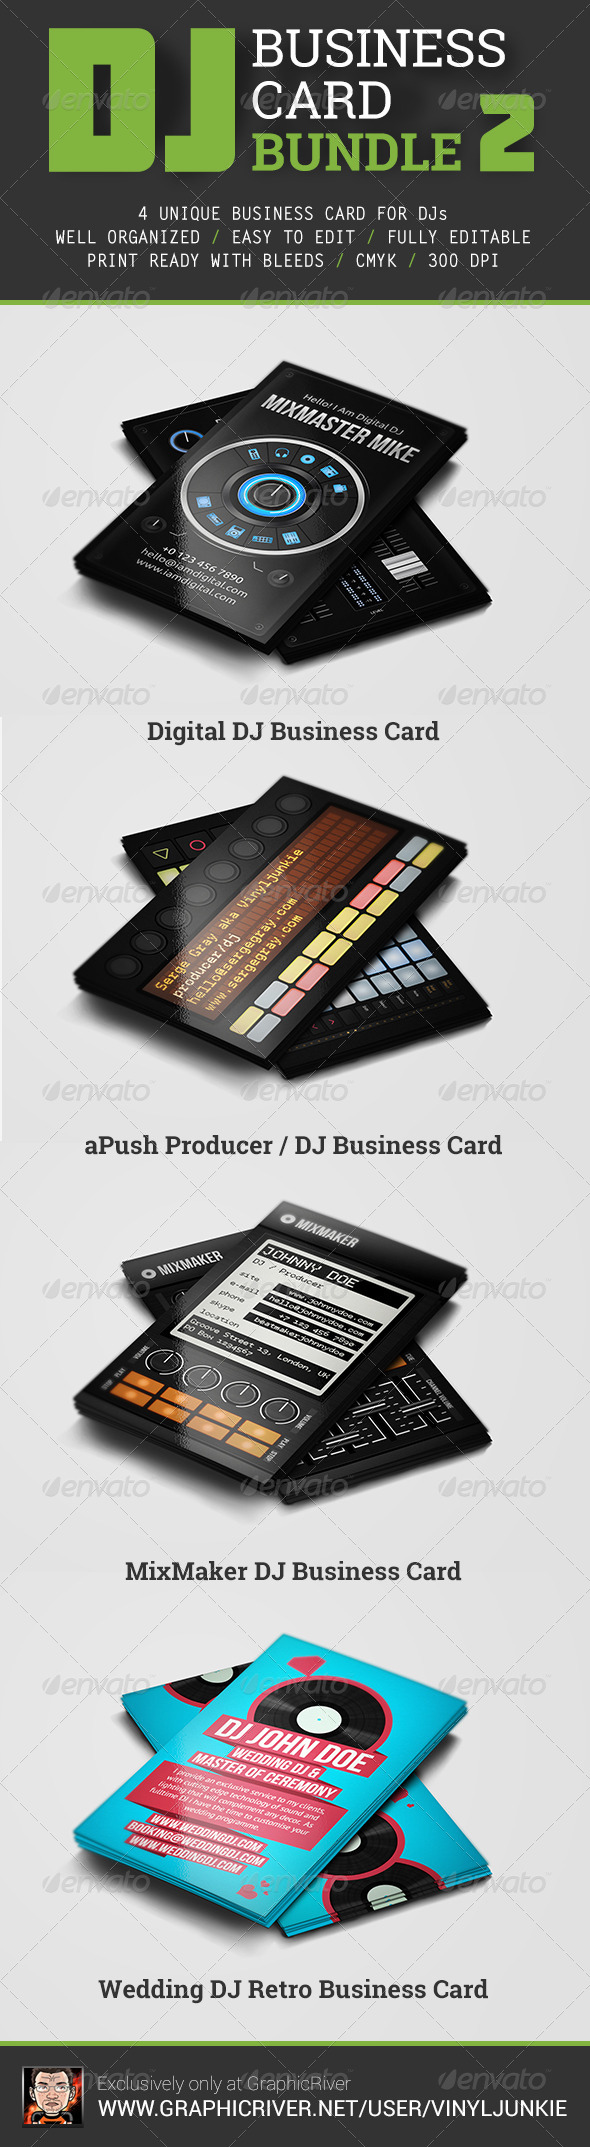 DJ Business Card Bundle 2 - Industry Specific Business Cards